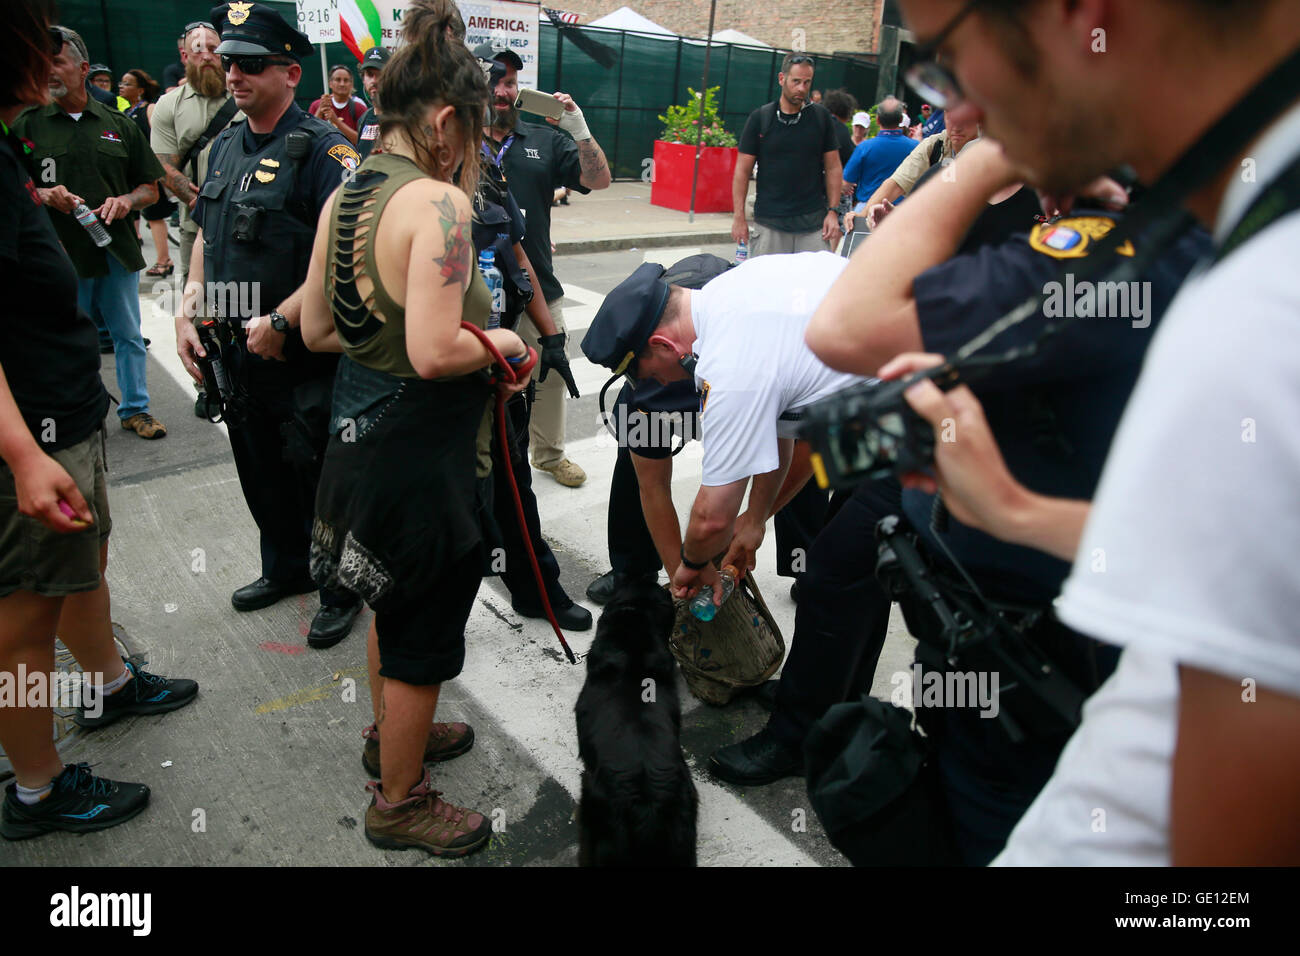 07212016 - Cleveland, Ohio, USA:  Cleveland police officers search a woman's bag without her permission near - Stock Image